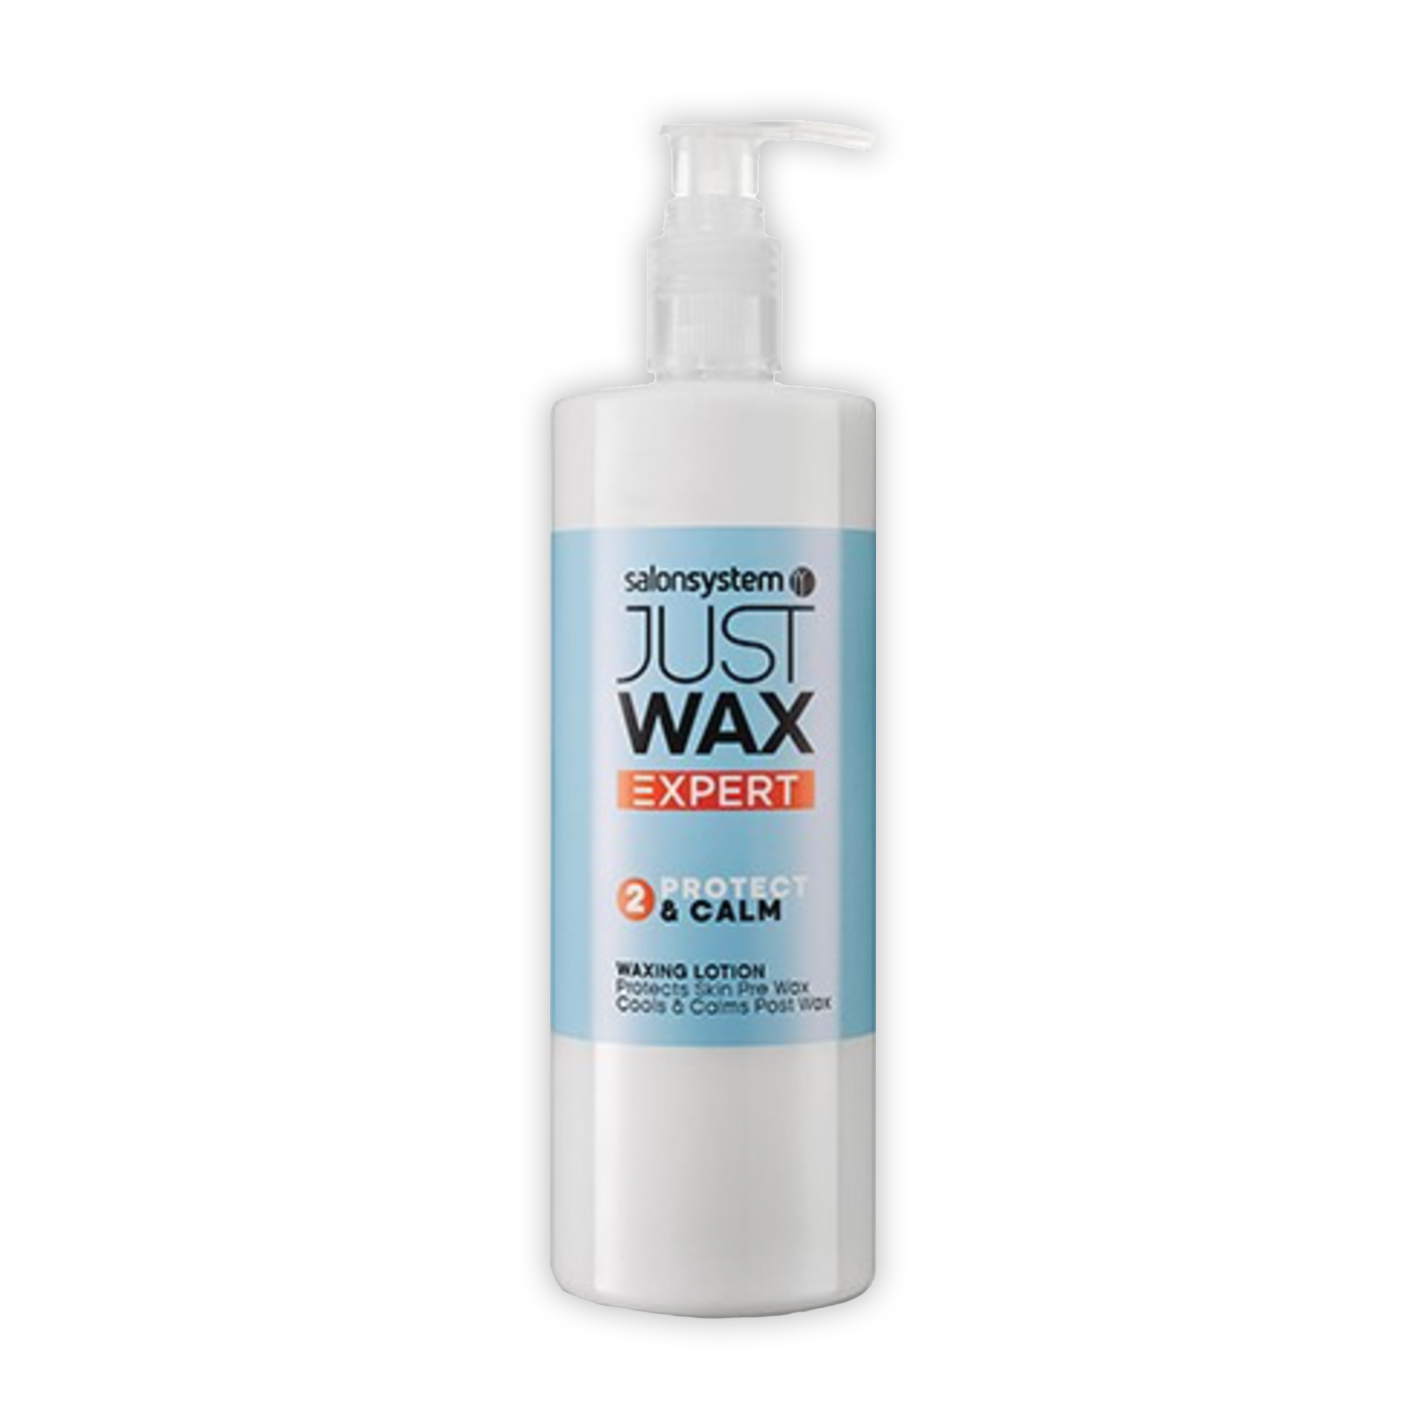 JustWax_ProtectCalm500ml